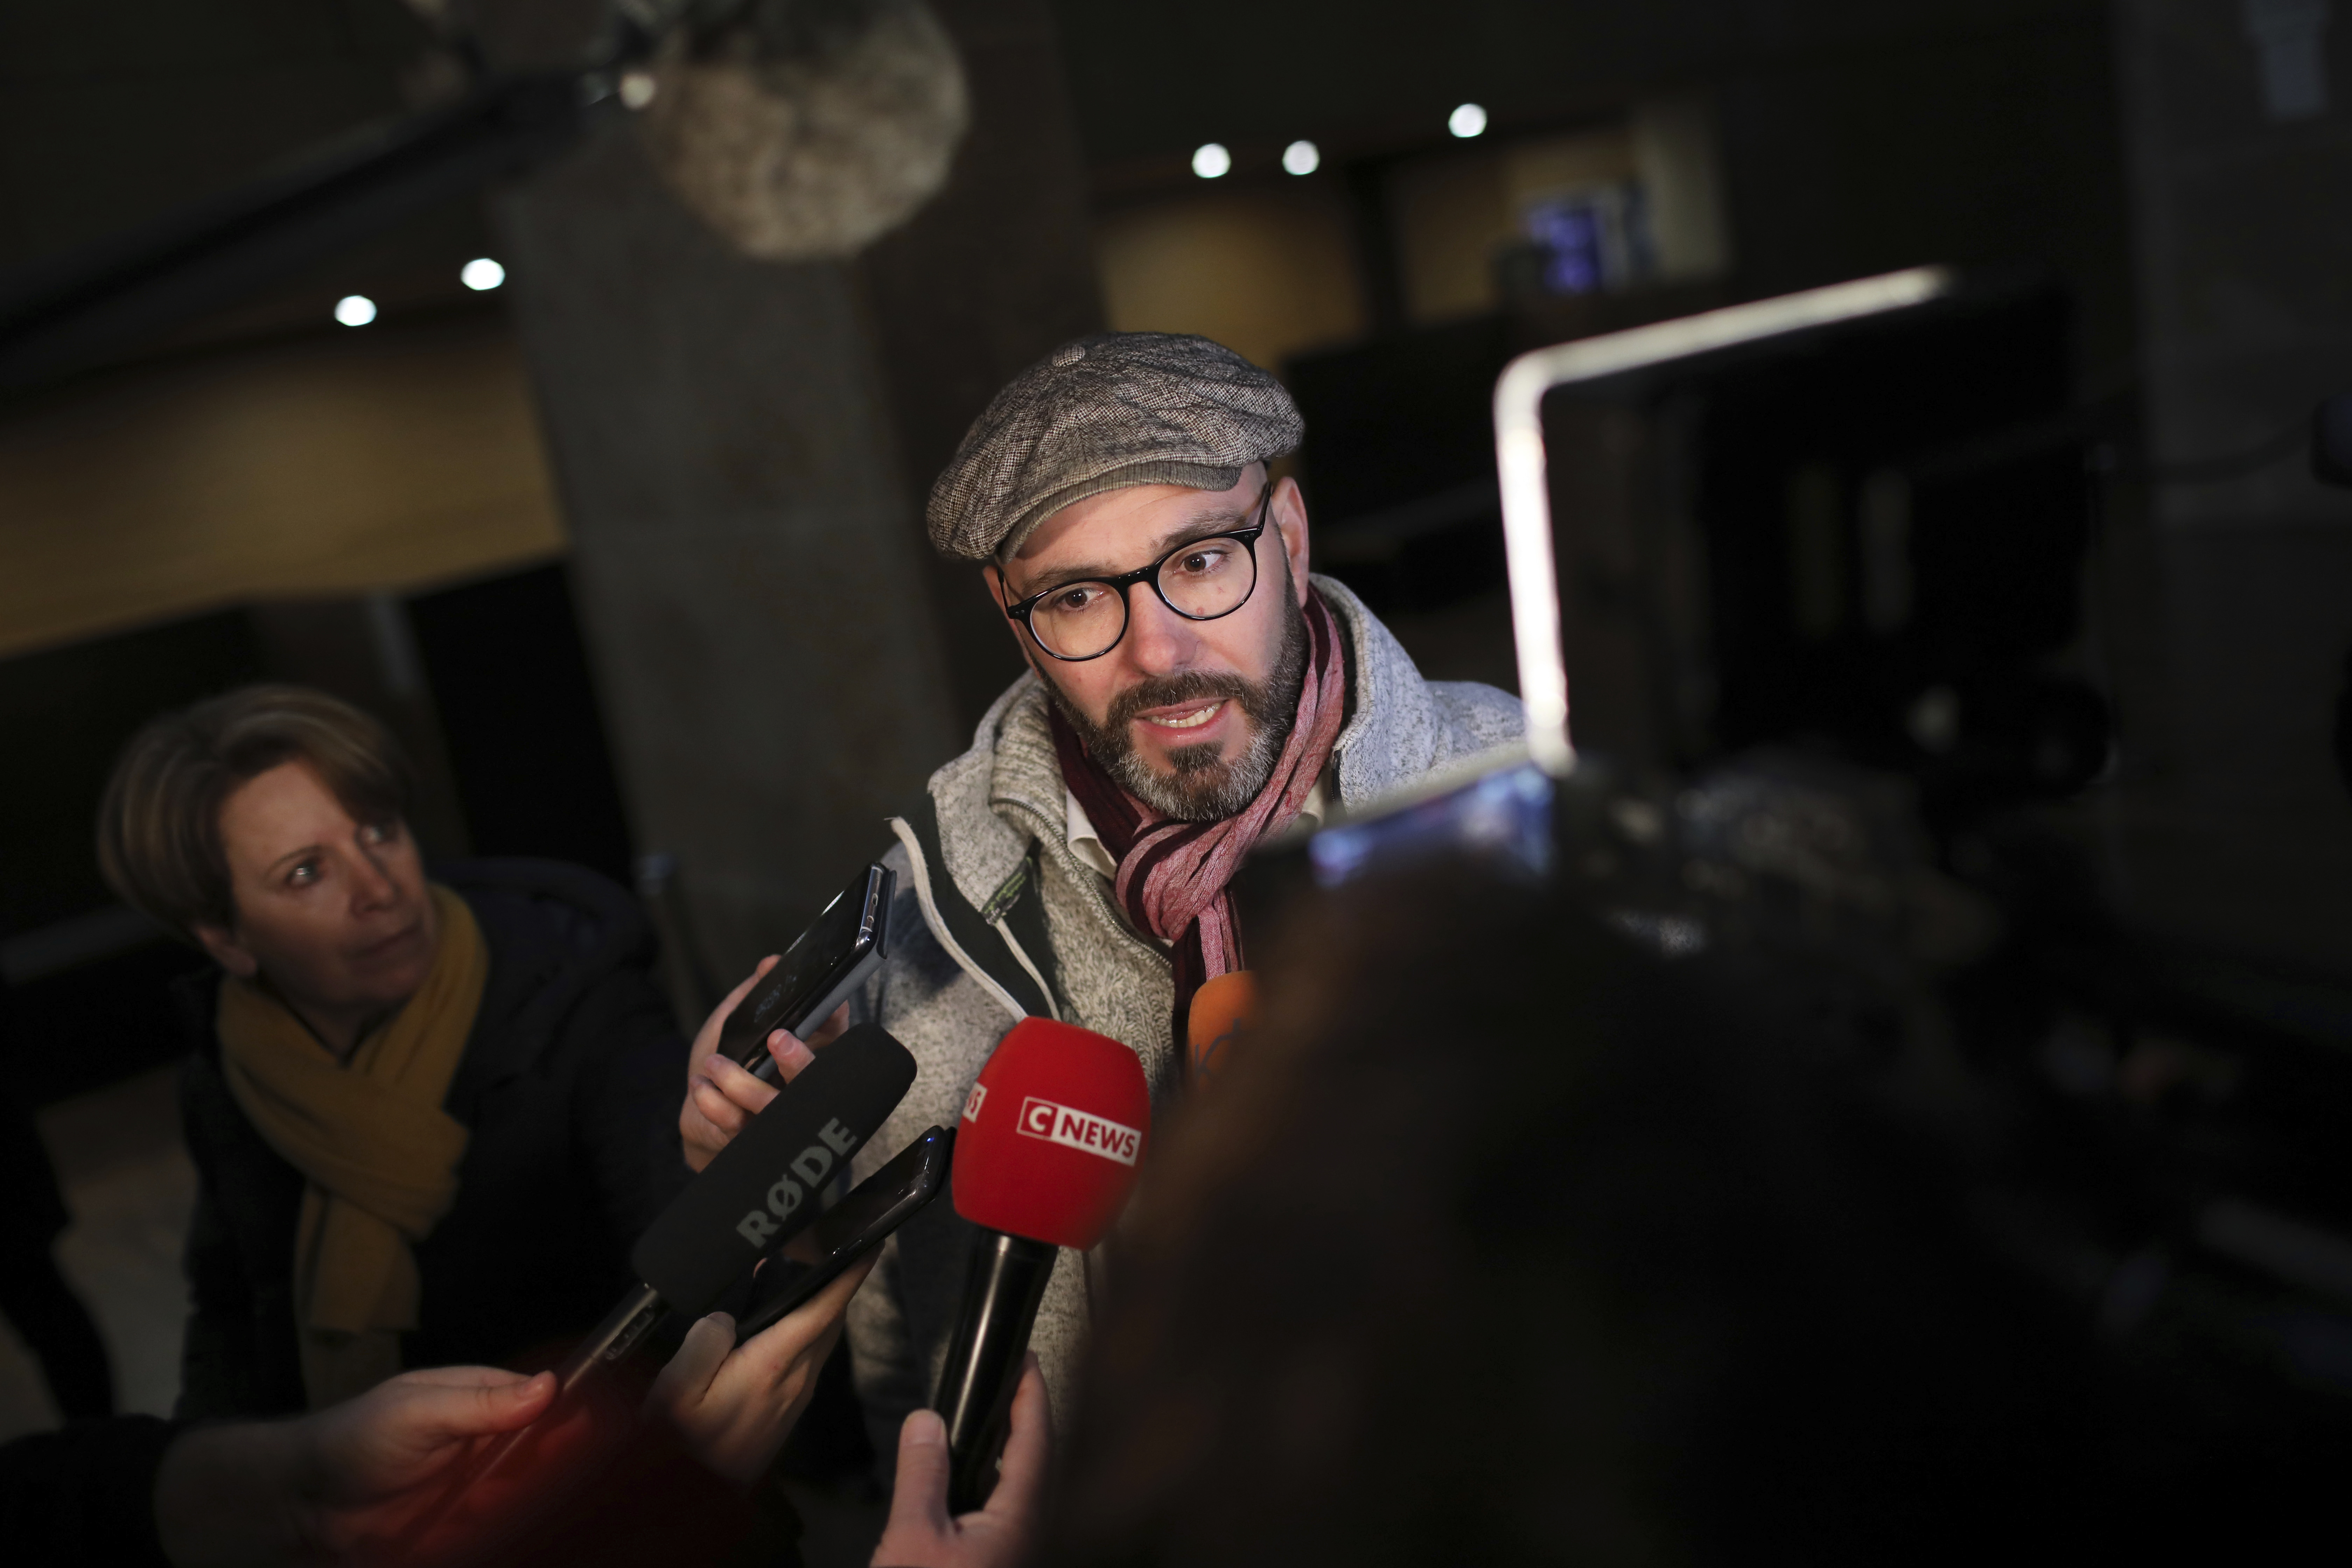 Francois Devaux, one of the plaintiffs and president of the La Parole Libérée (the Liberated Word) victims' group and self-declared victim of Father Preynat talks to the media as he arrives to attend the trial of Cardinal Philippe Barbarin at the Lyon on January 7, 2019.